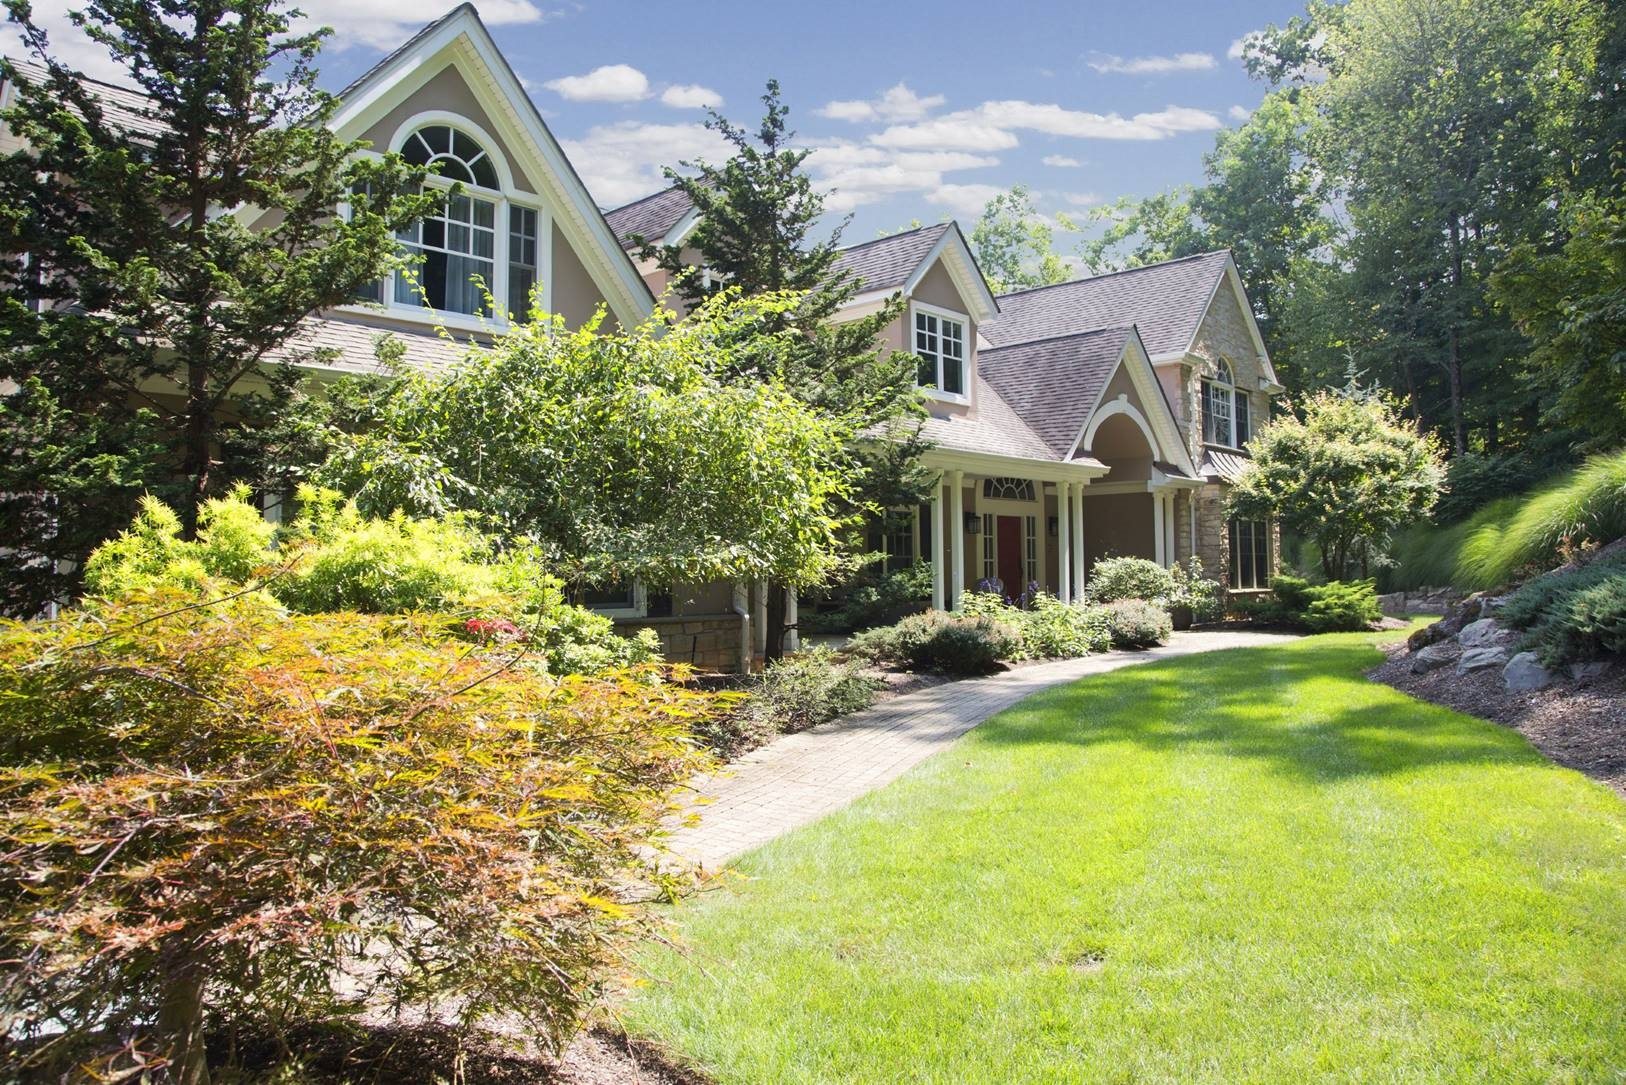 واحد منزل الأسرة للـ Sale في Impeccable Manor. 20 Shinnecock Trail, Franklin Lakes, New Jersey, 07417 United States